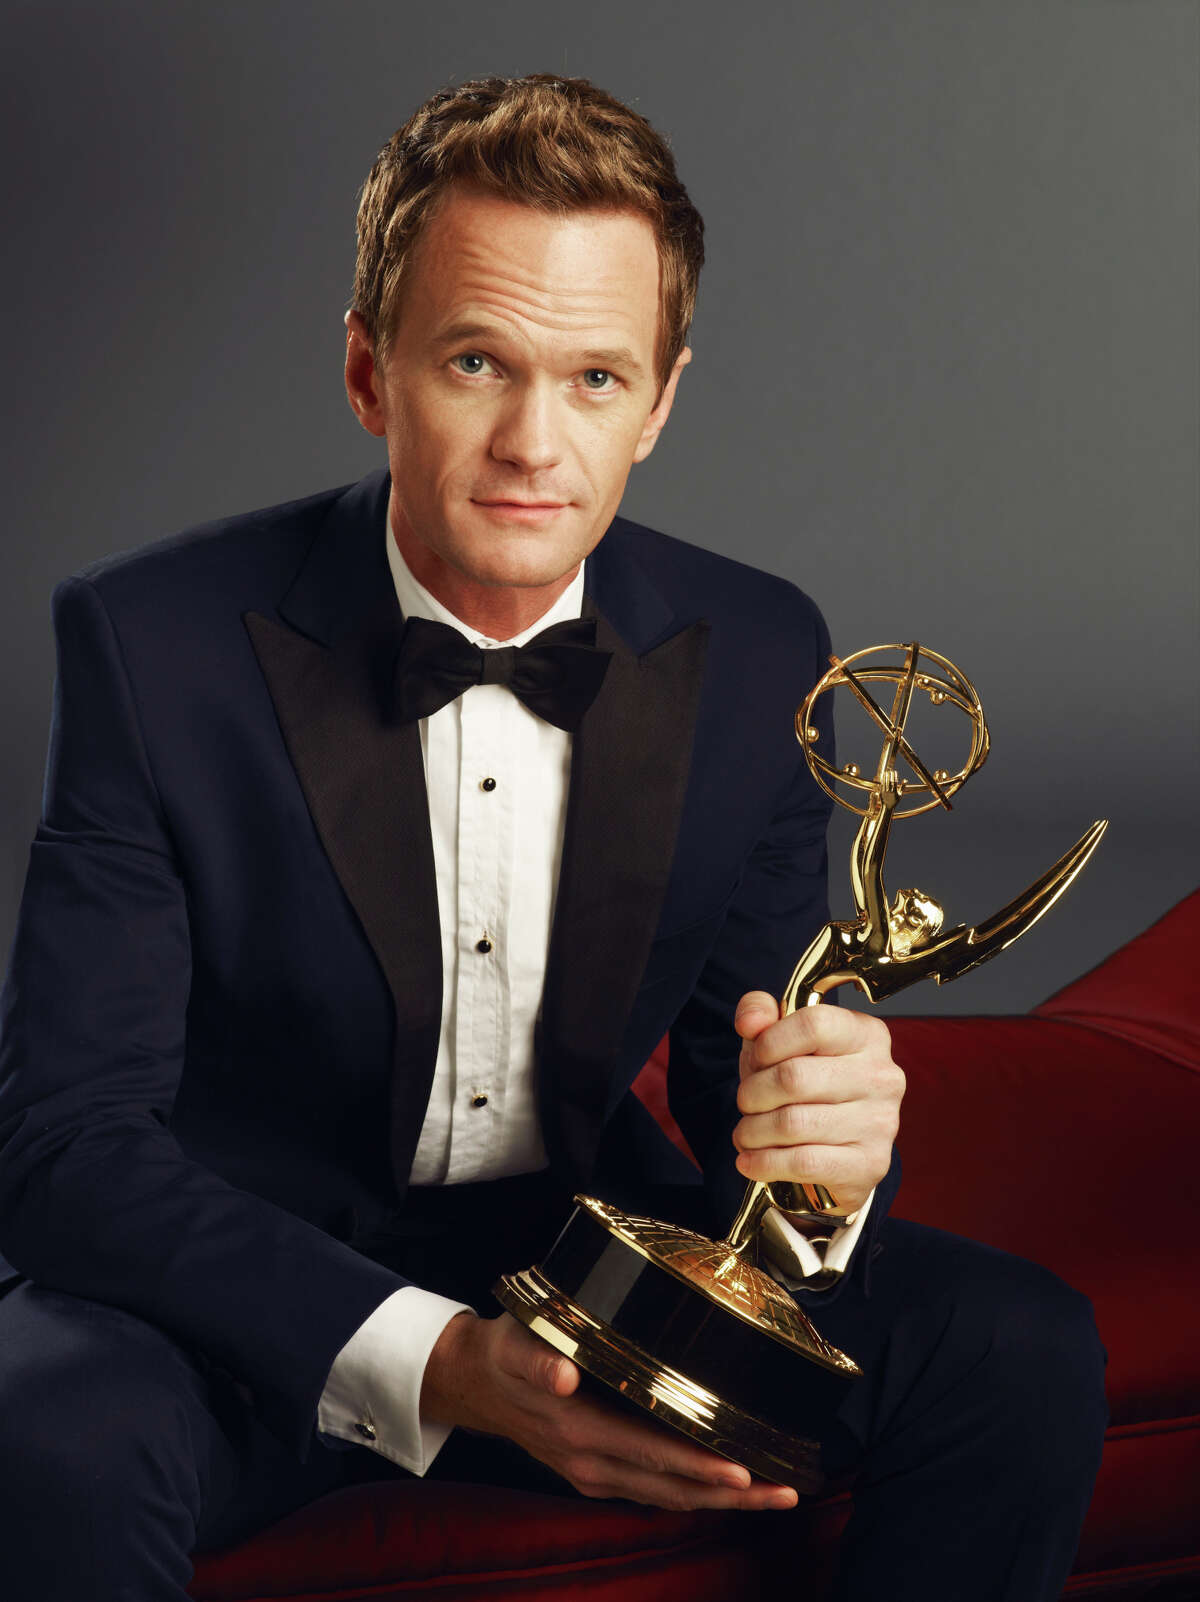 Why He'd Work: His skills as an actor and award show host/singer/dancer make him one of the most talented men in TV. He's always hip, but never too hip for the room. His role on CBS'